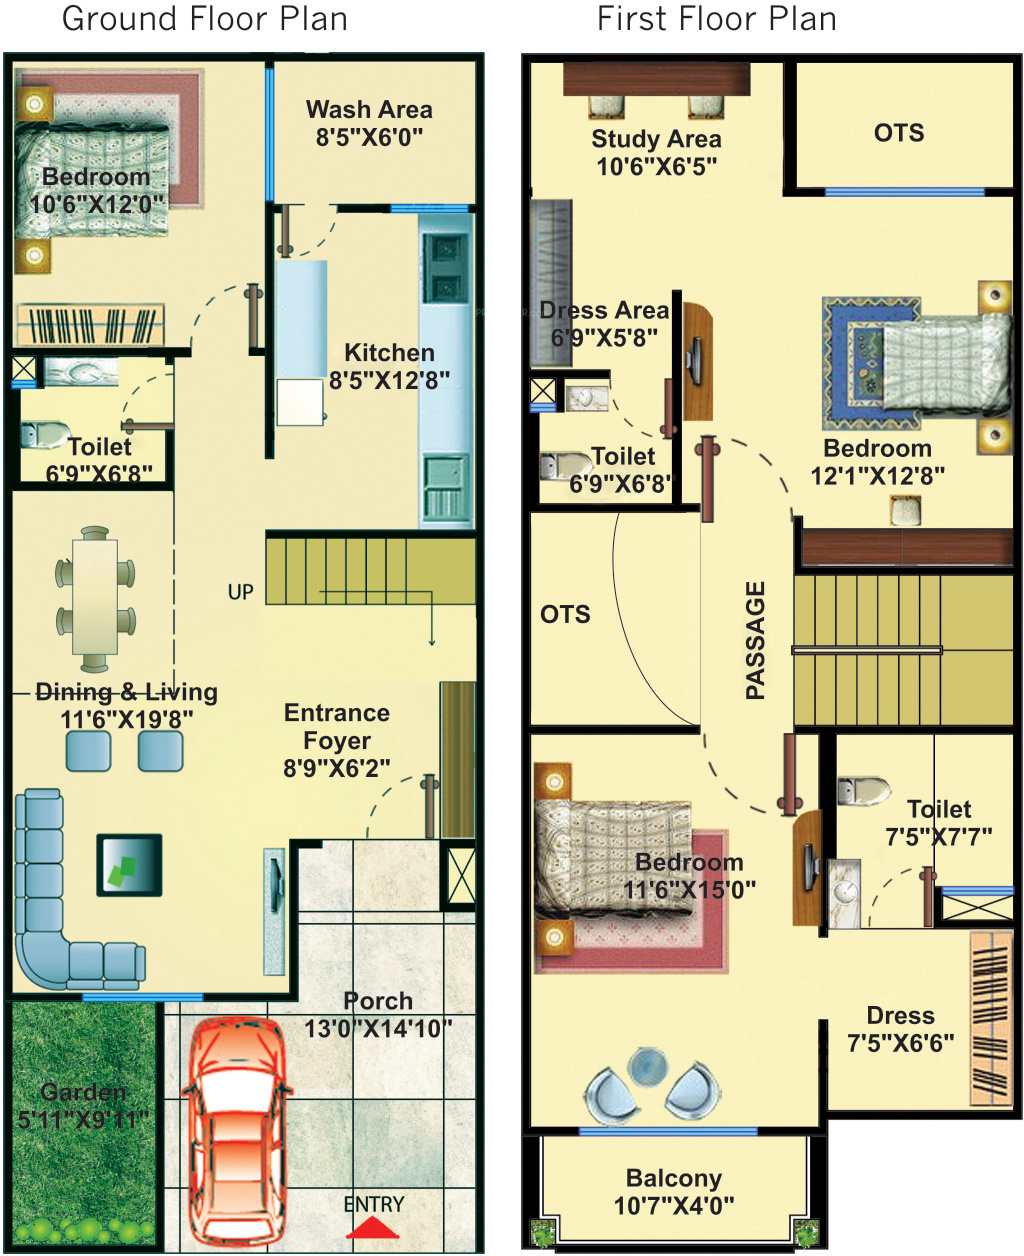 Nm London Villas In Super Corridor Indore Price